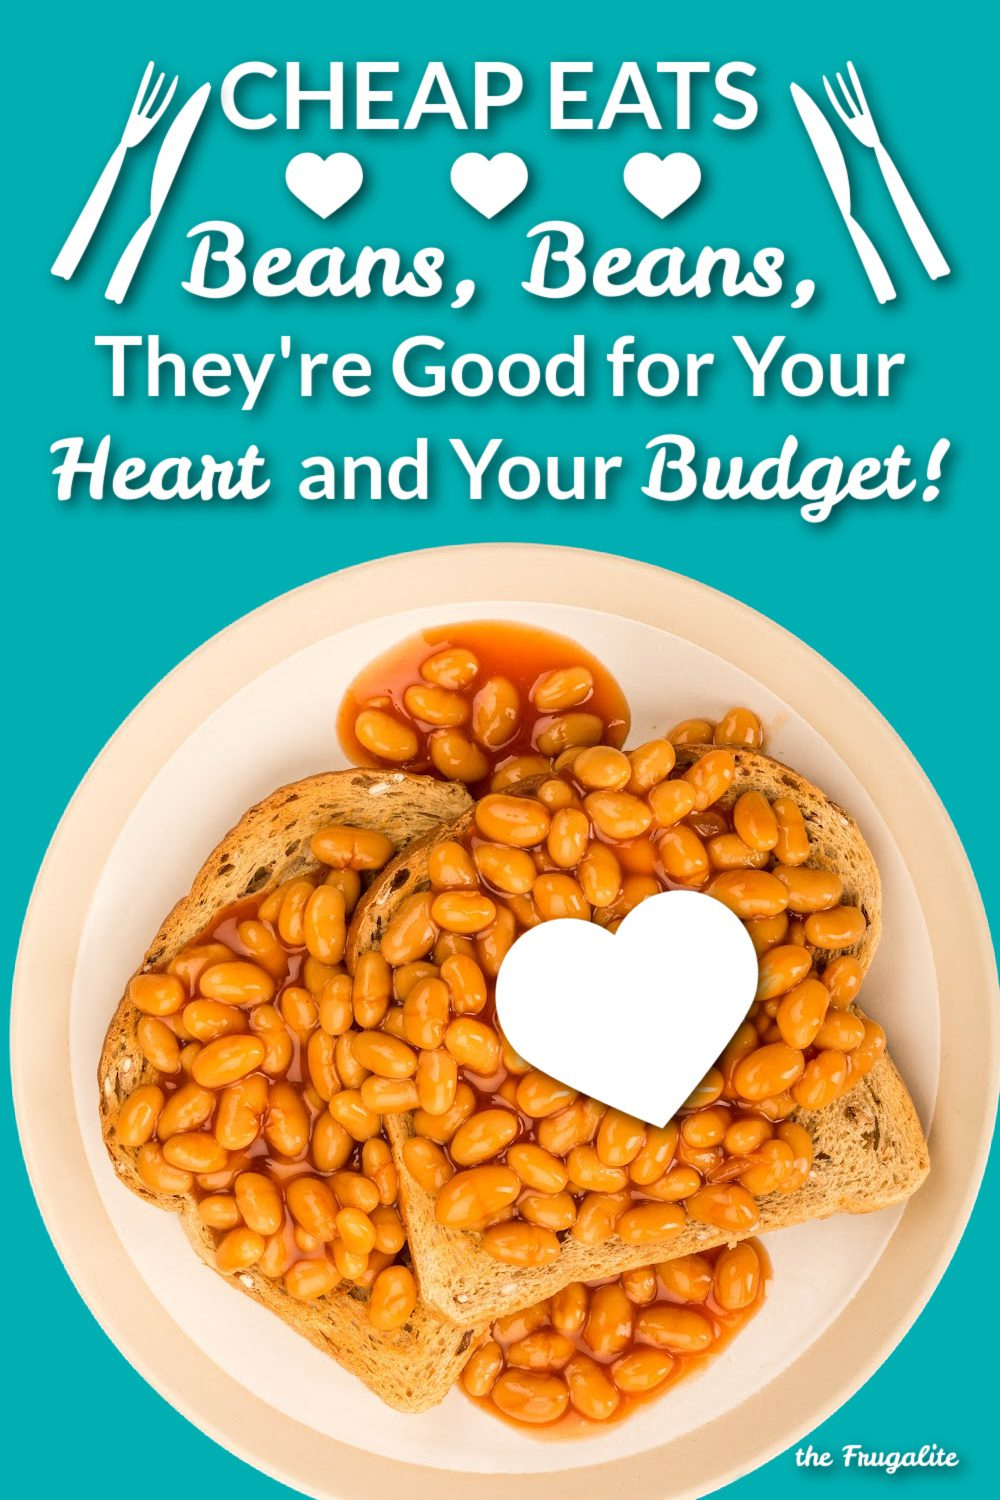 Cheap Eats: Beans, Beans! Good for Your Heart AND Your Budget!